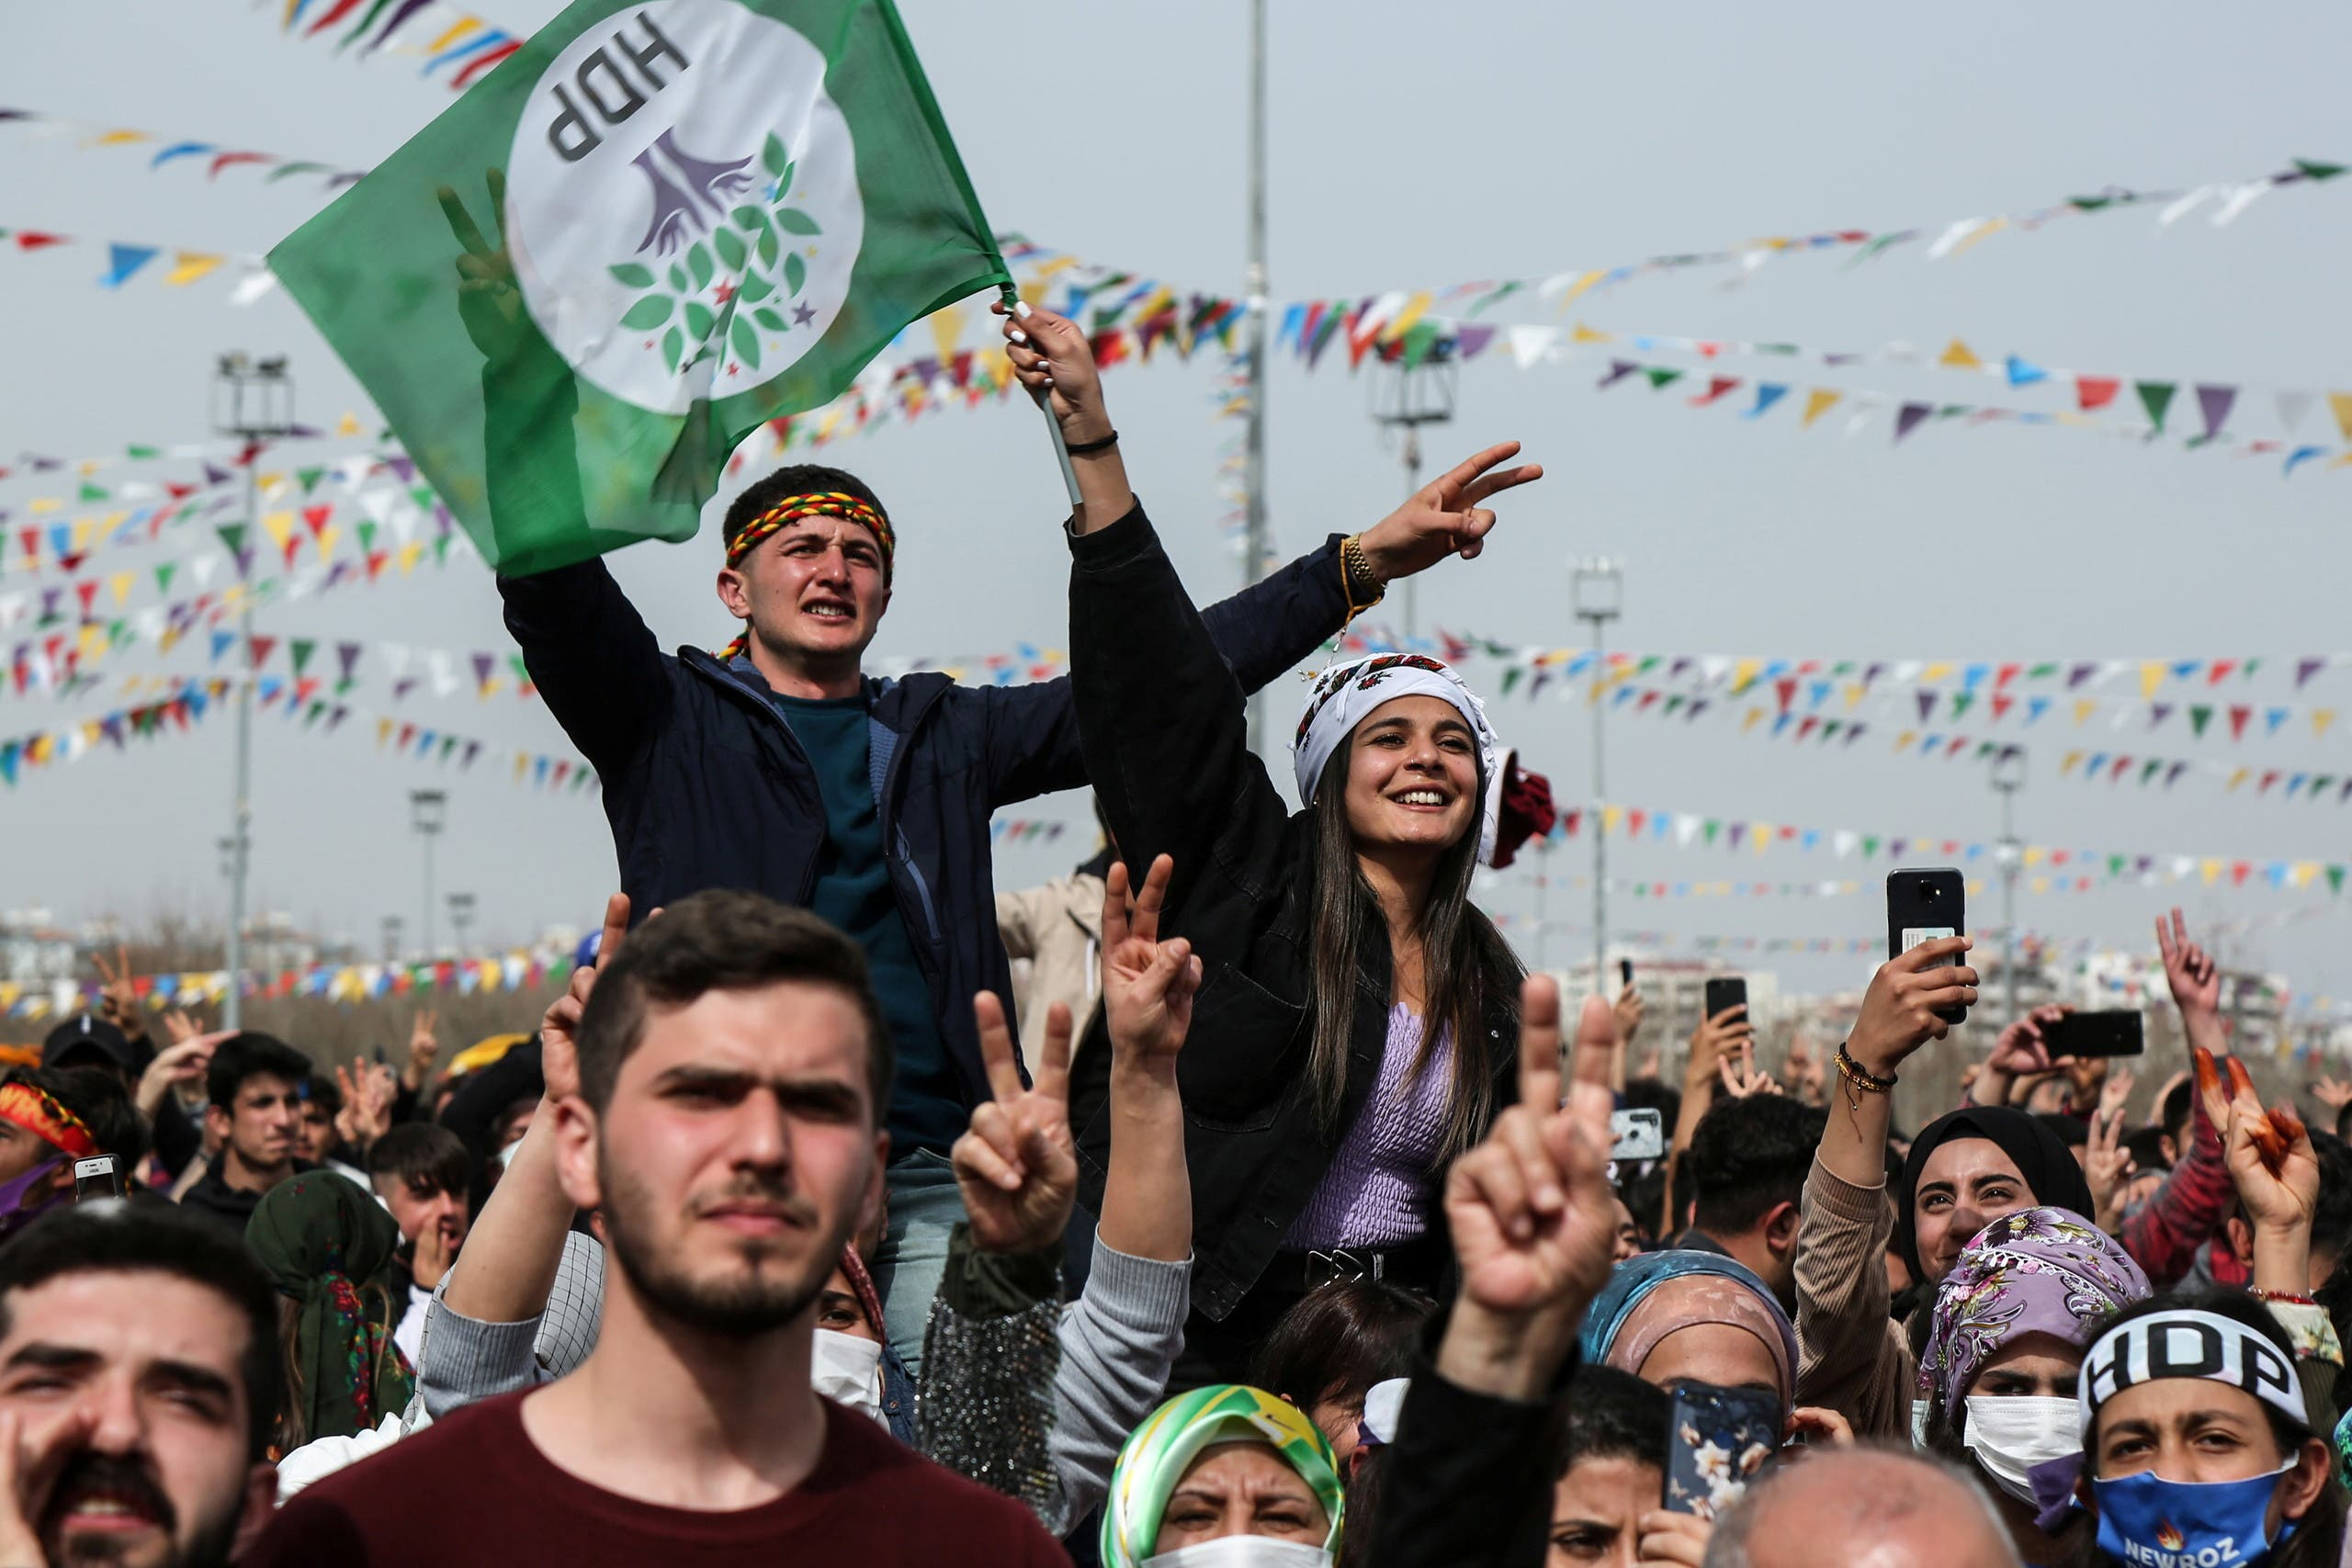 Supporters of pro-Kurdish Peoples' Democratic Party (HDP) gather to celebrate Newroz, which marks the arrival of spring, in Diyarbakir, Turkey March 21, 2021. (Reuters)